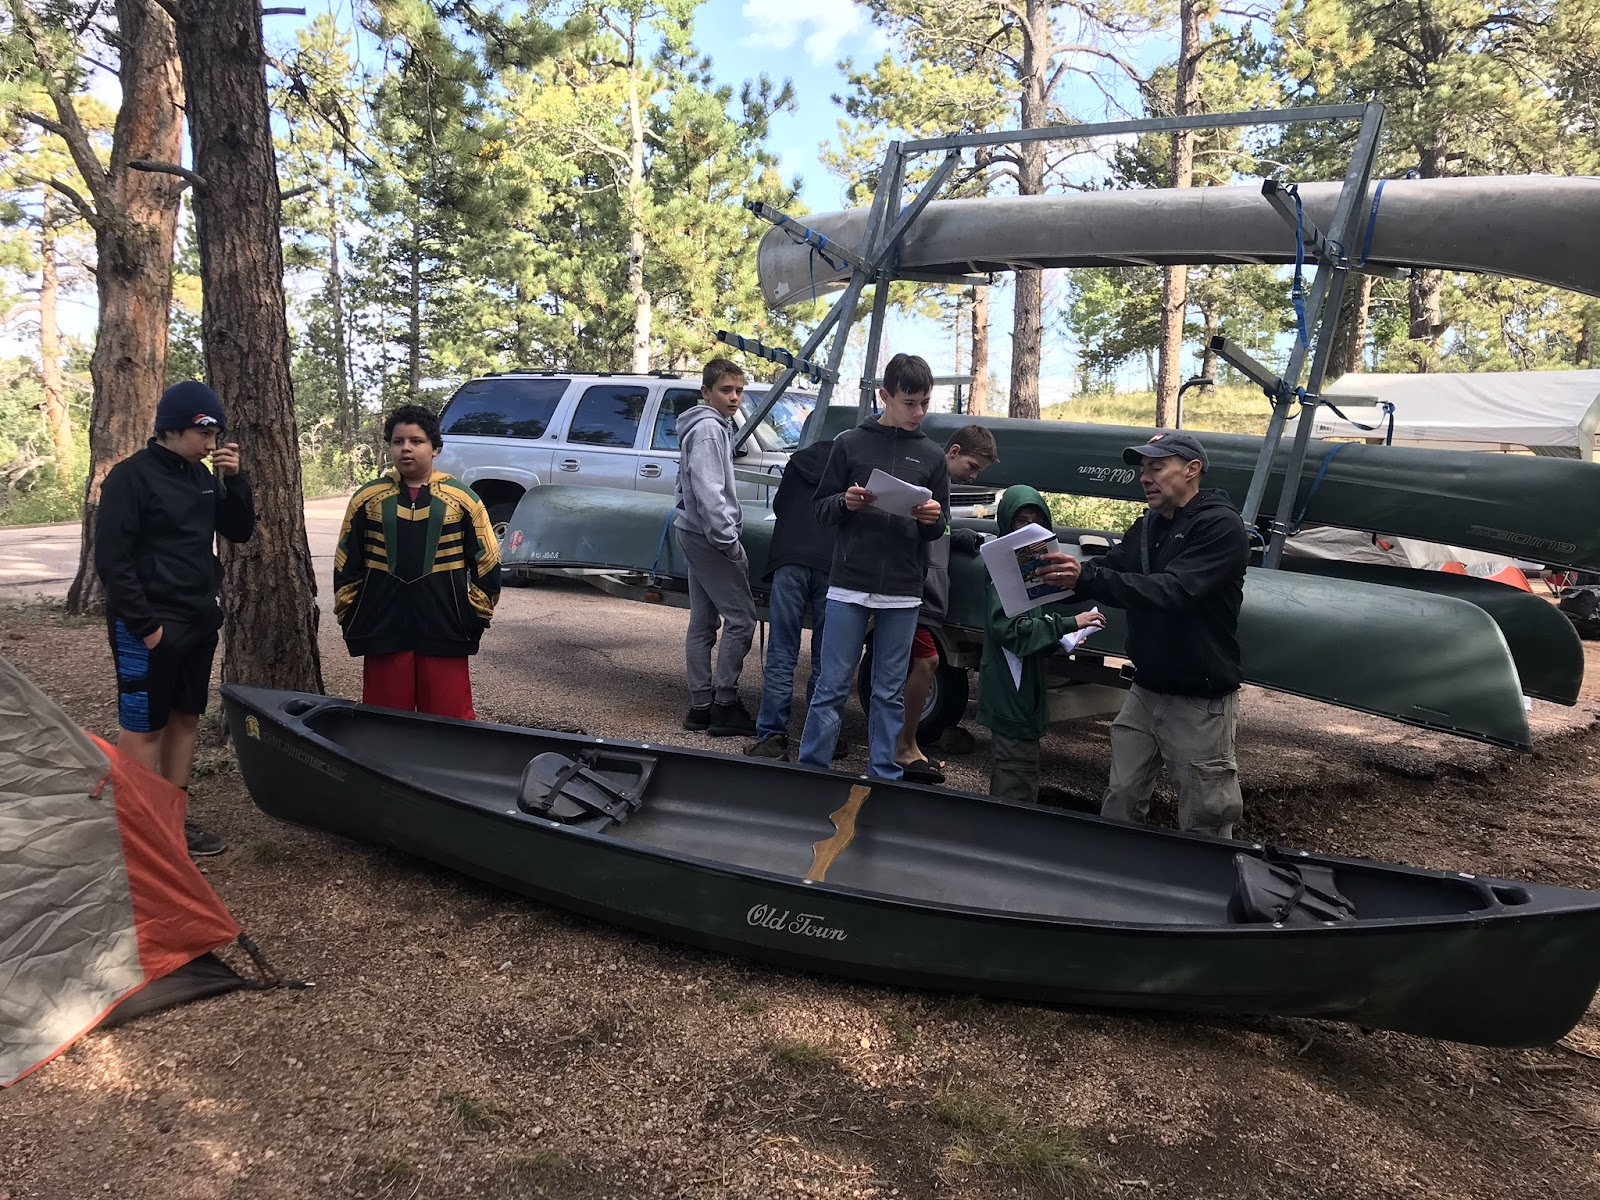 Canoe Campout - Sep 2017